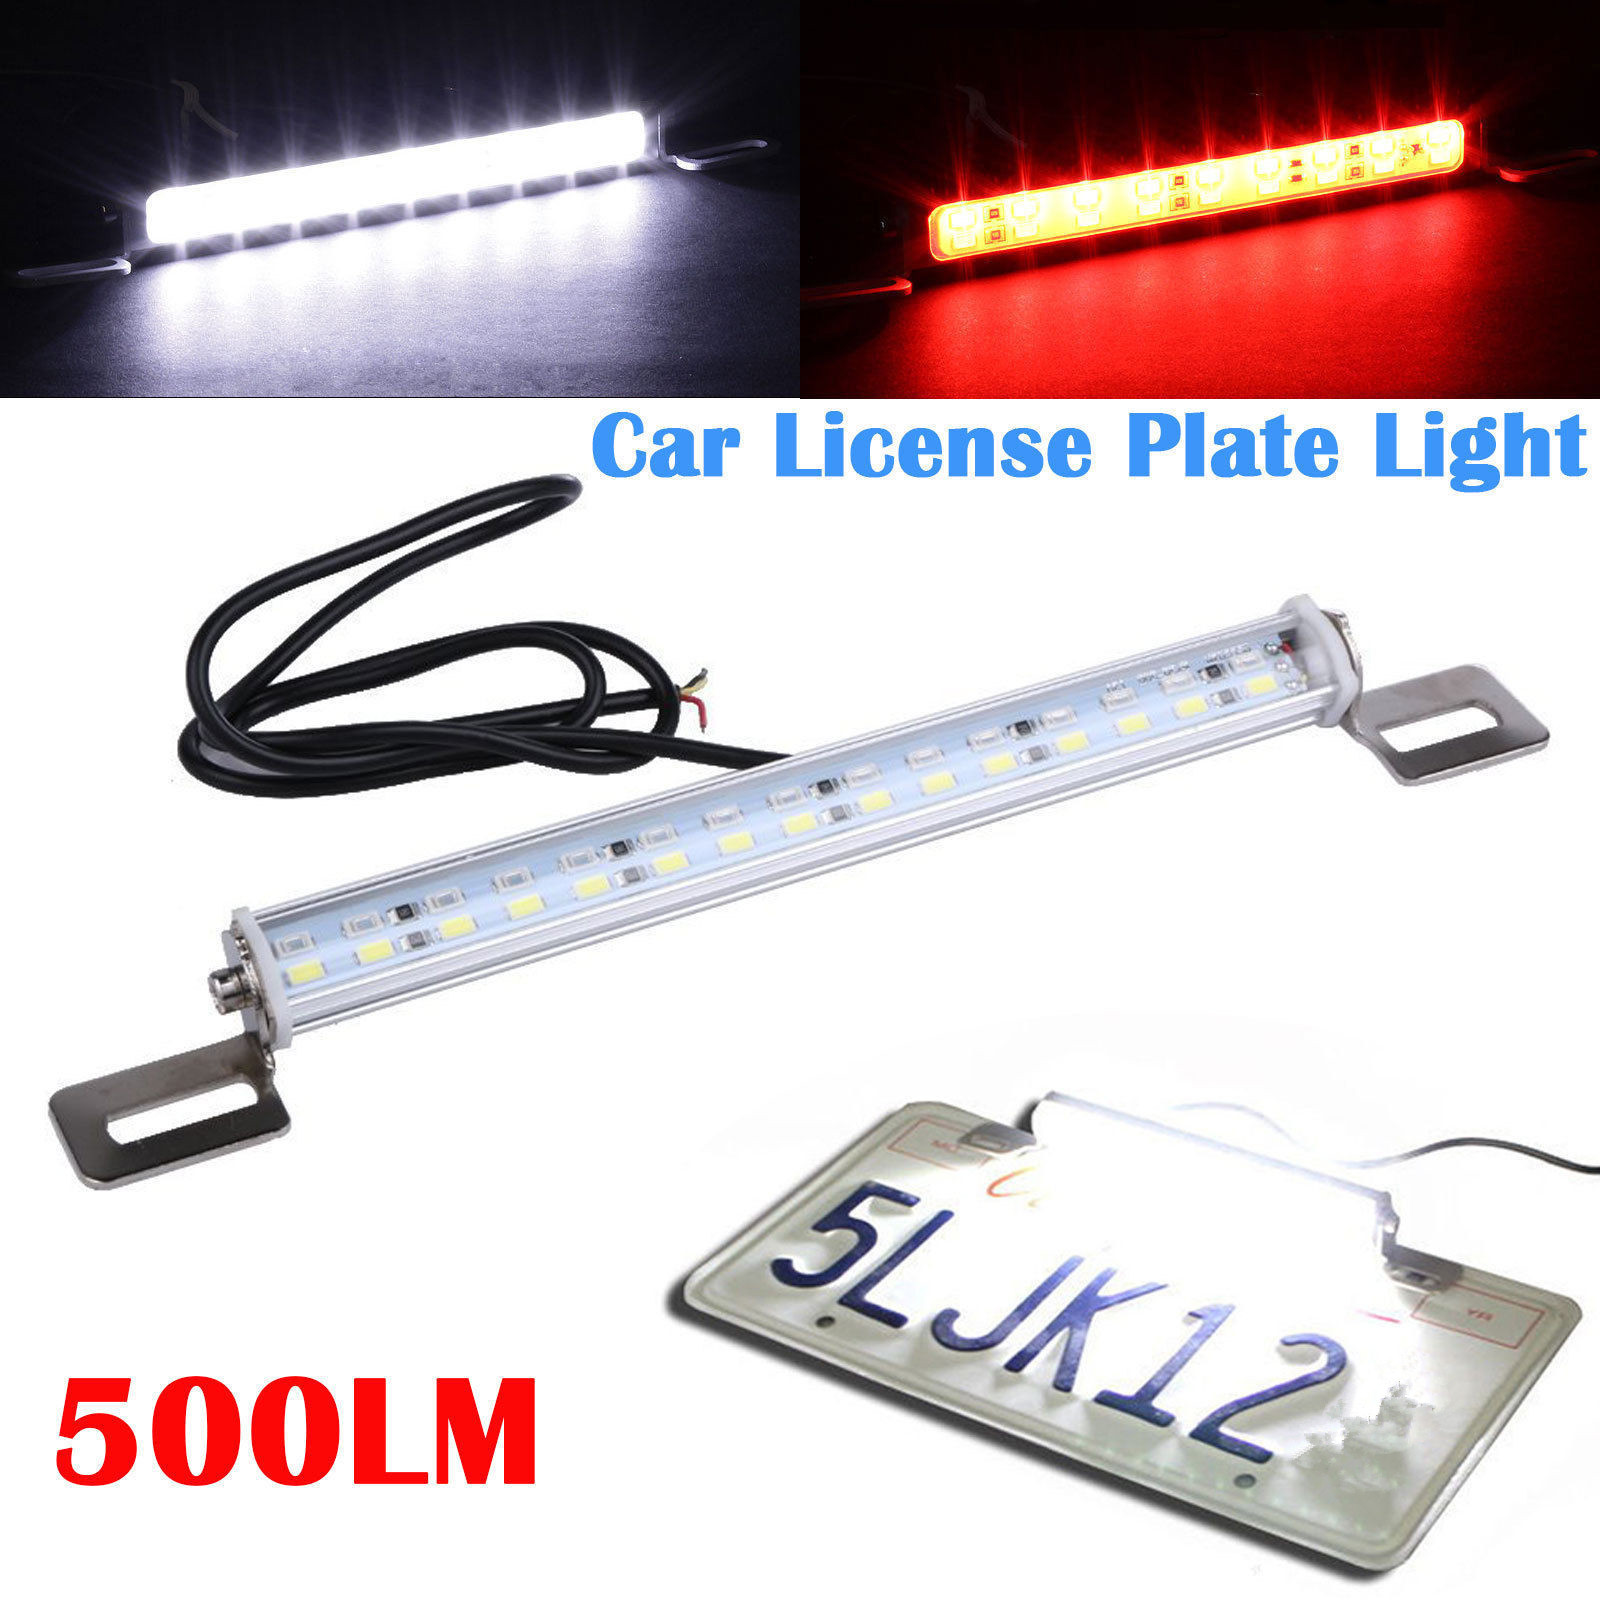 2x White LED Screw Lights Number Plate Directed Light Bolts Car Van Bolts BRIGHT